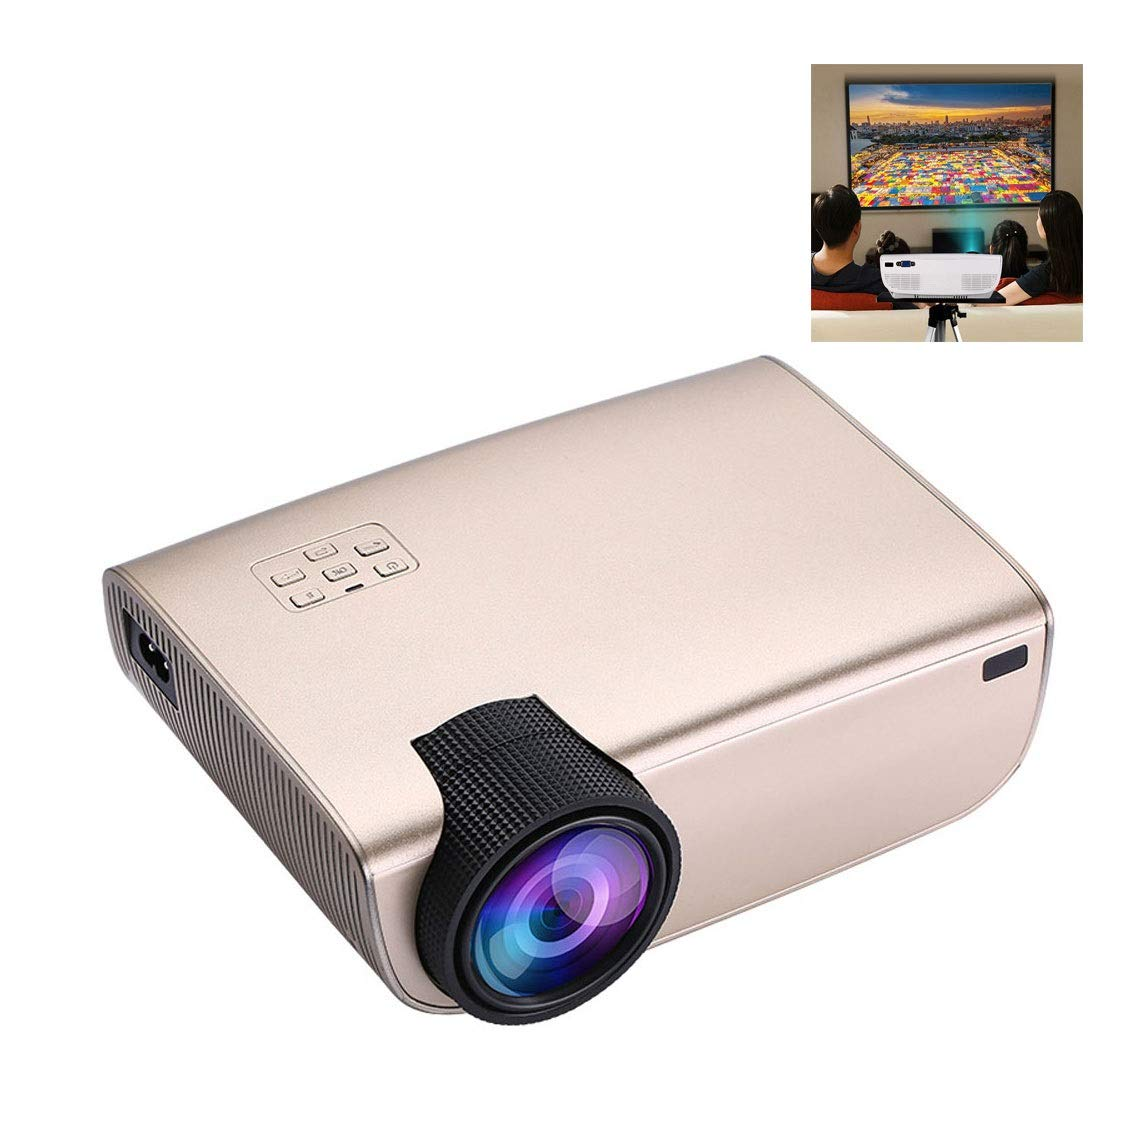 Full HD 1080P Video Projector, 3,500 Lumens Home Portable Movie Projector with Native Resolution 1080,Mobile Phone Wireless Connection,with USB/Micro SD/AV/HDMI/Input (Color : Gold)